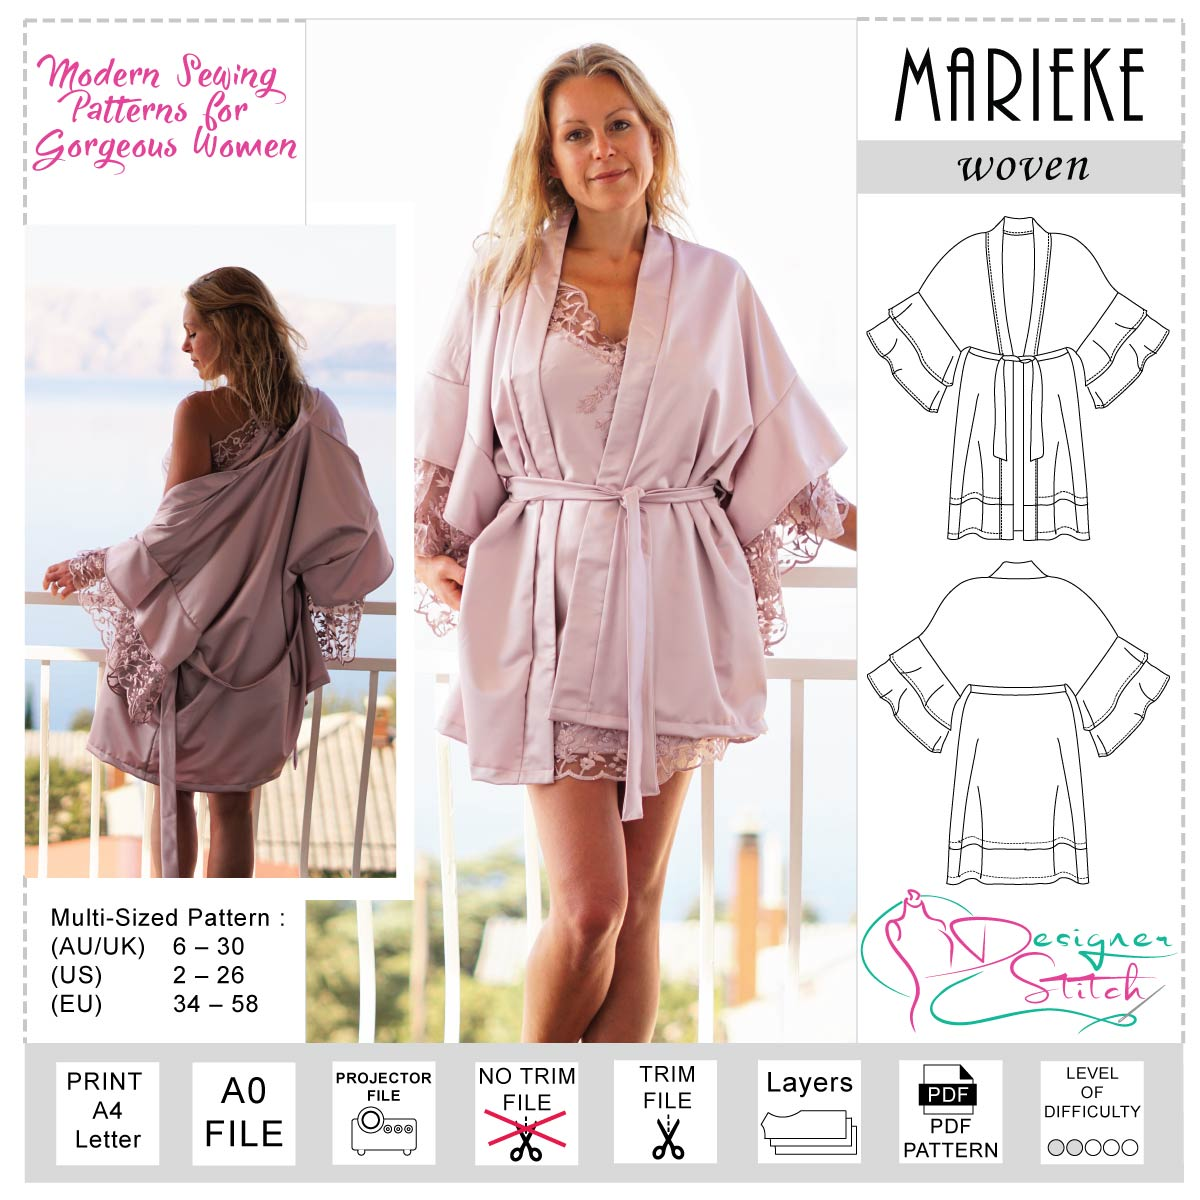 Marieke Robe Sewing Pattern Pdf Designer Stitch